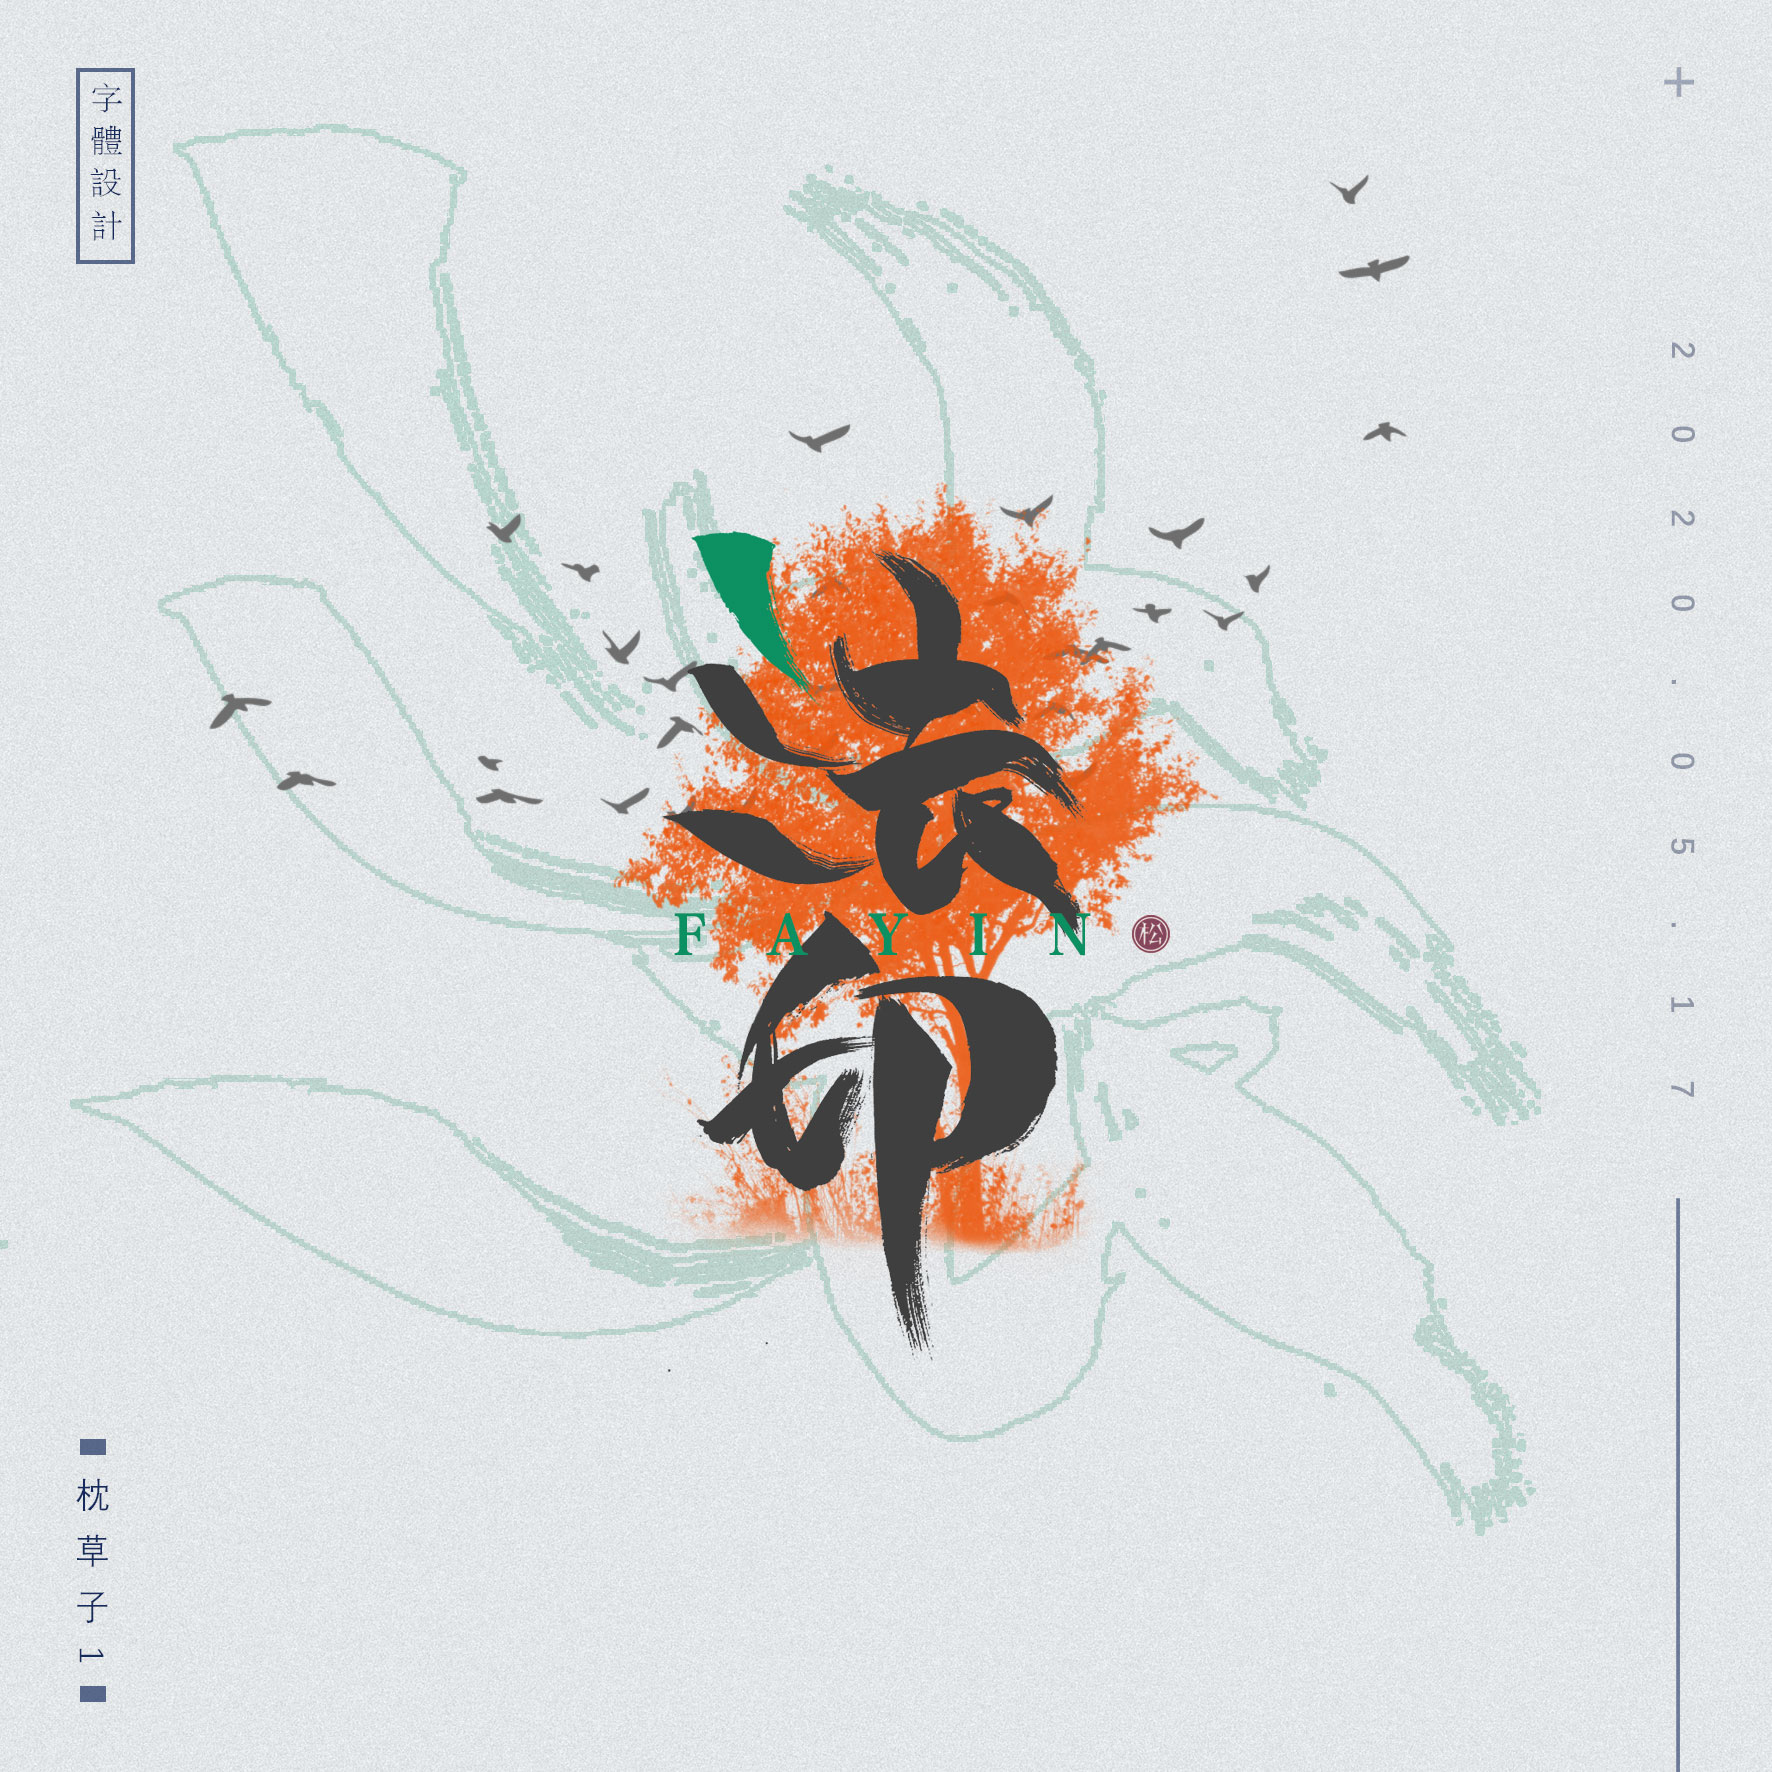 Interesting Chinese Creative Font Design-When painting and pictures merge together